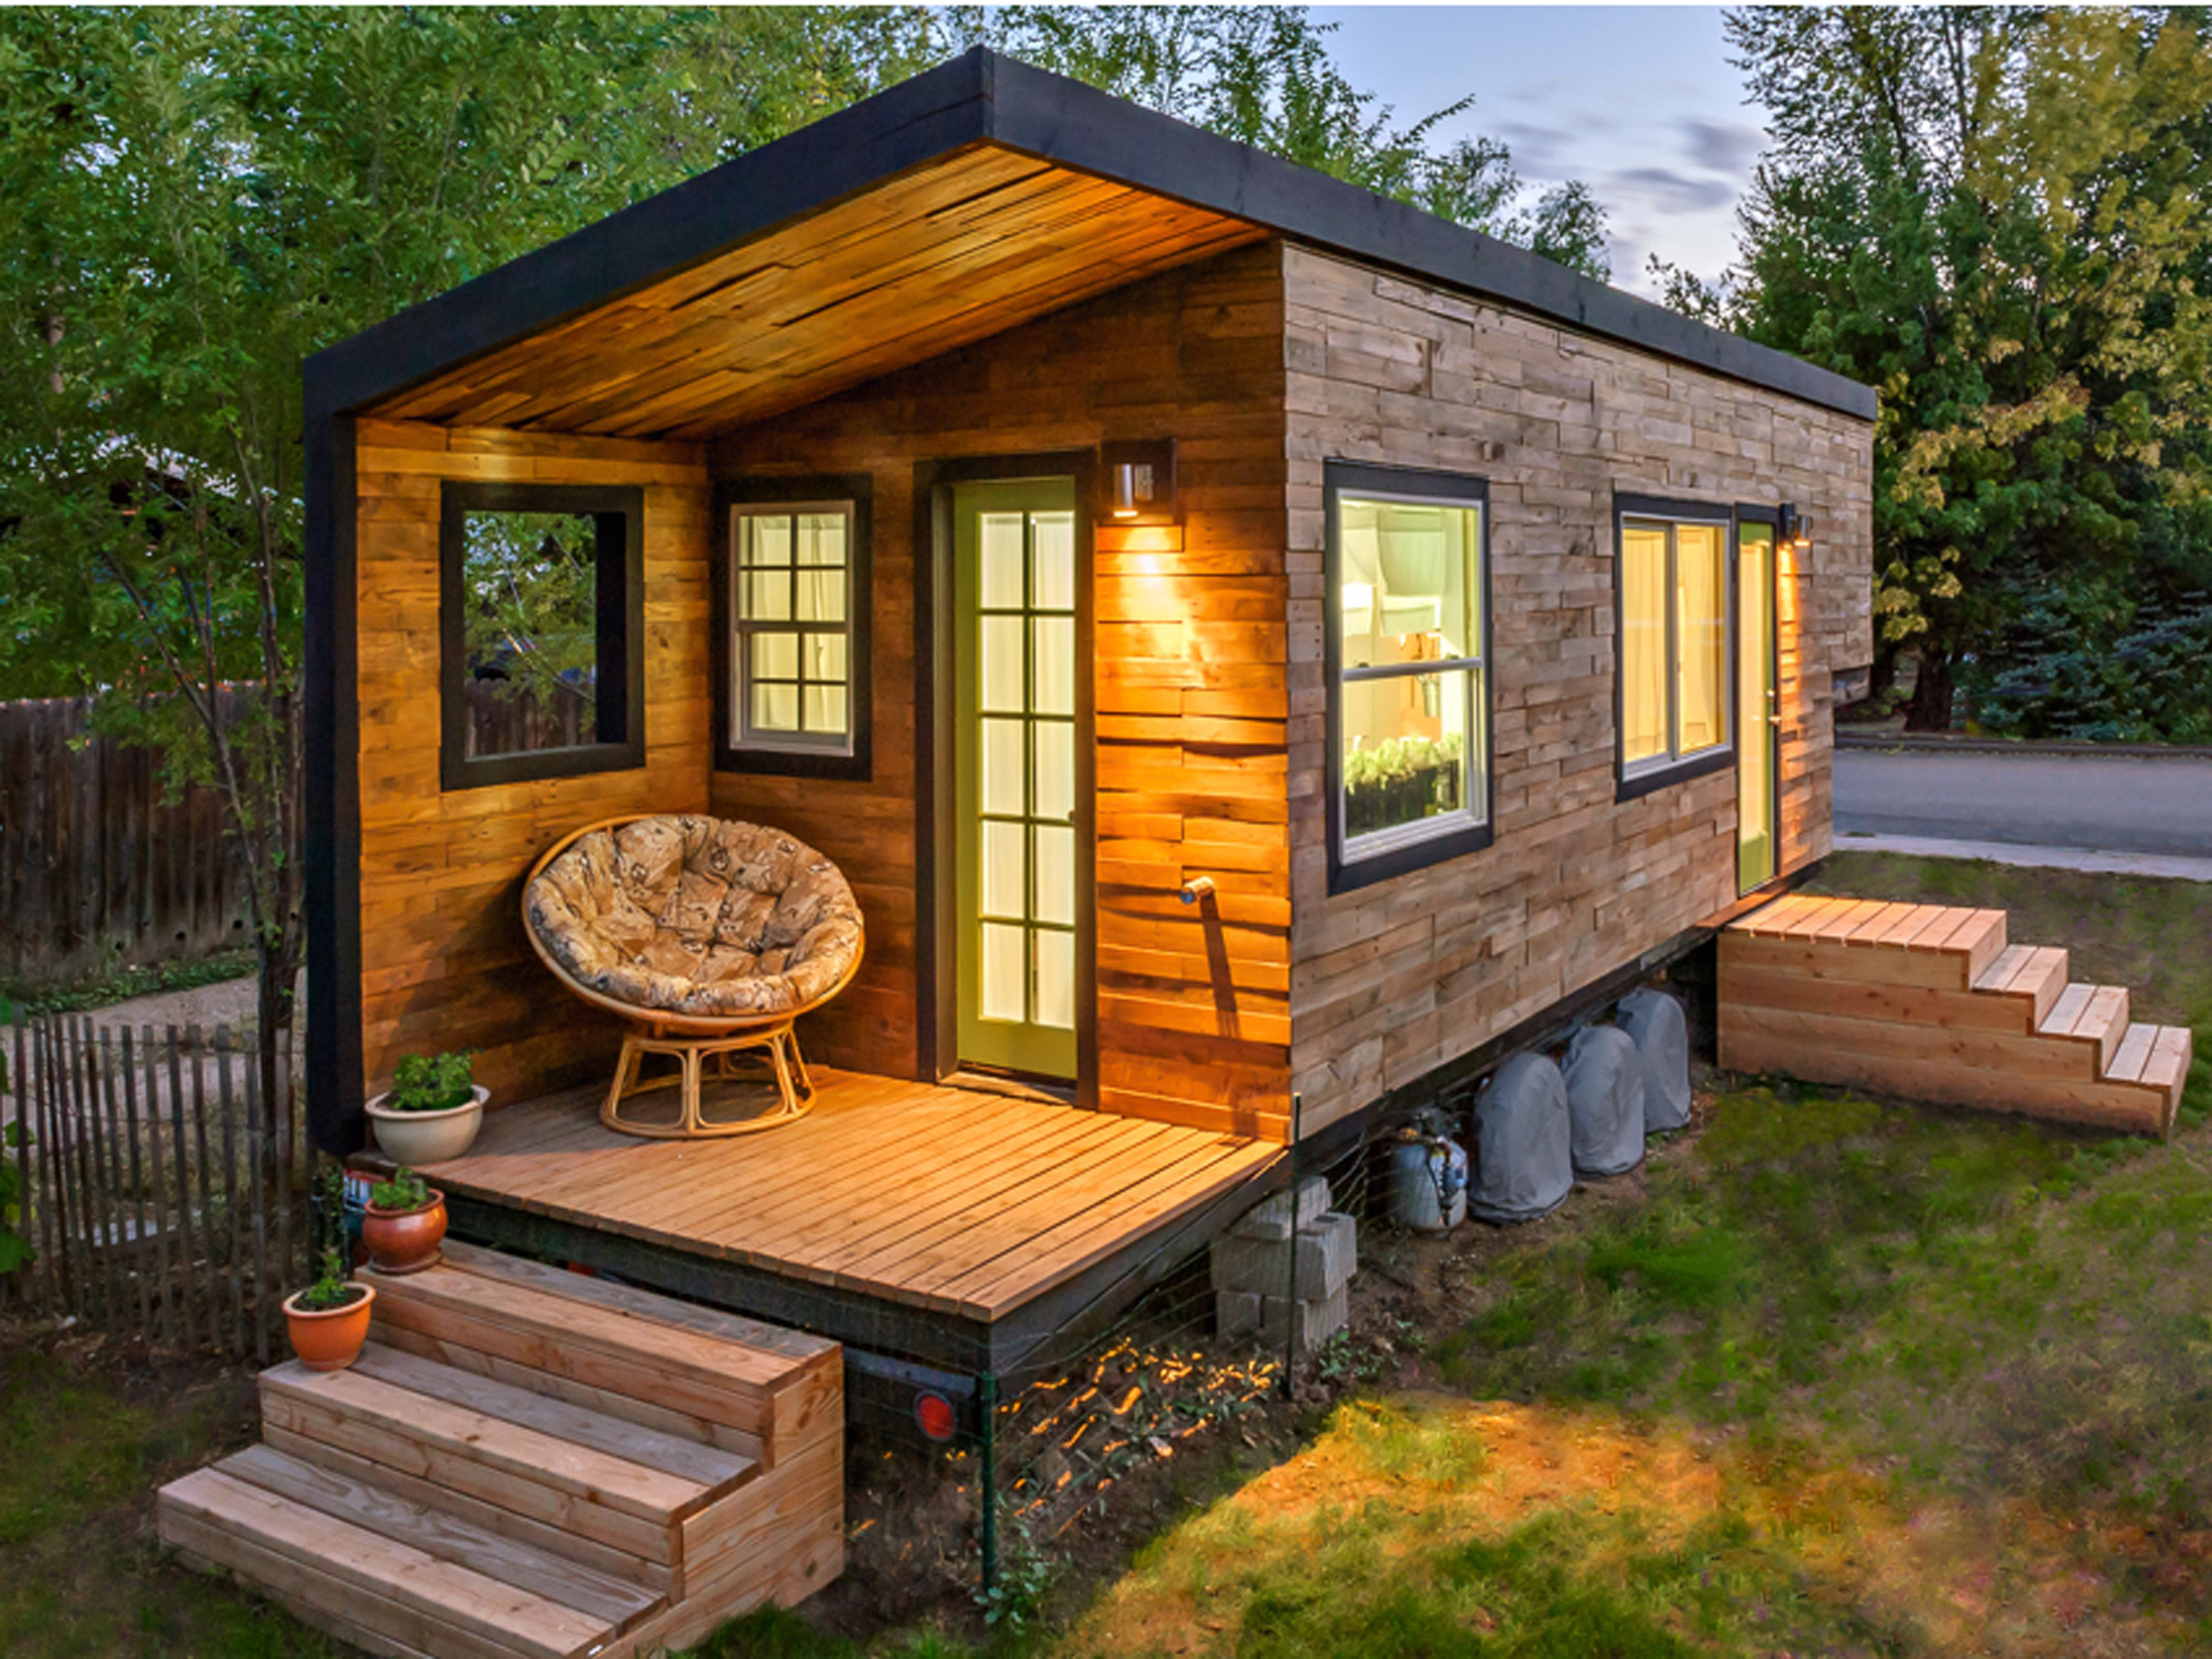 12 Tiny Houses That Will Fulfill Your Getting-Away-From-It-All Fantasies